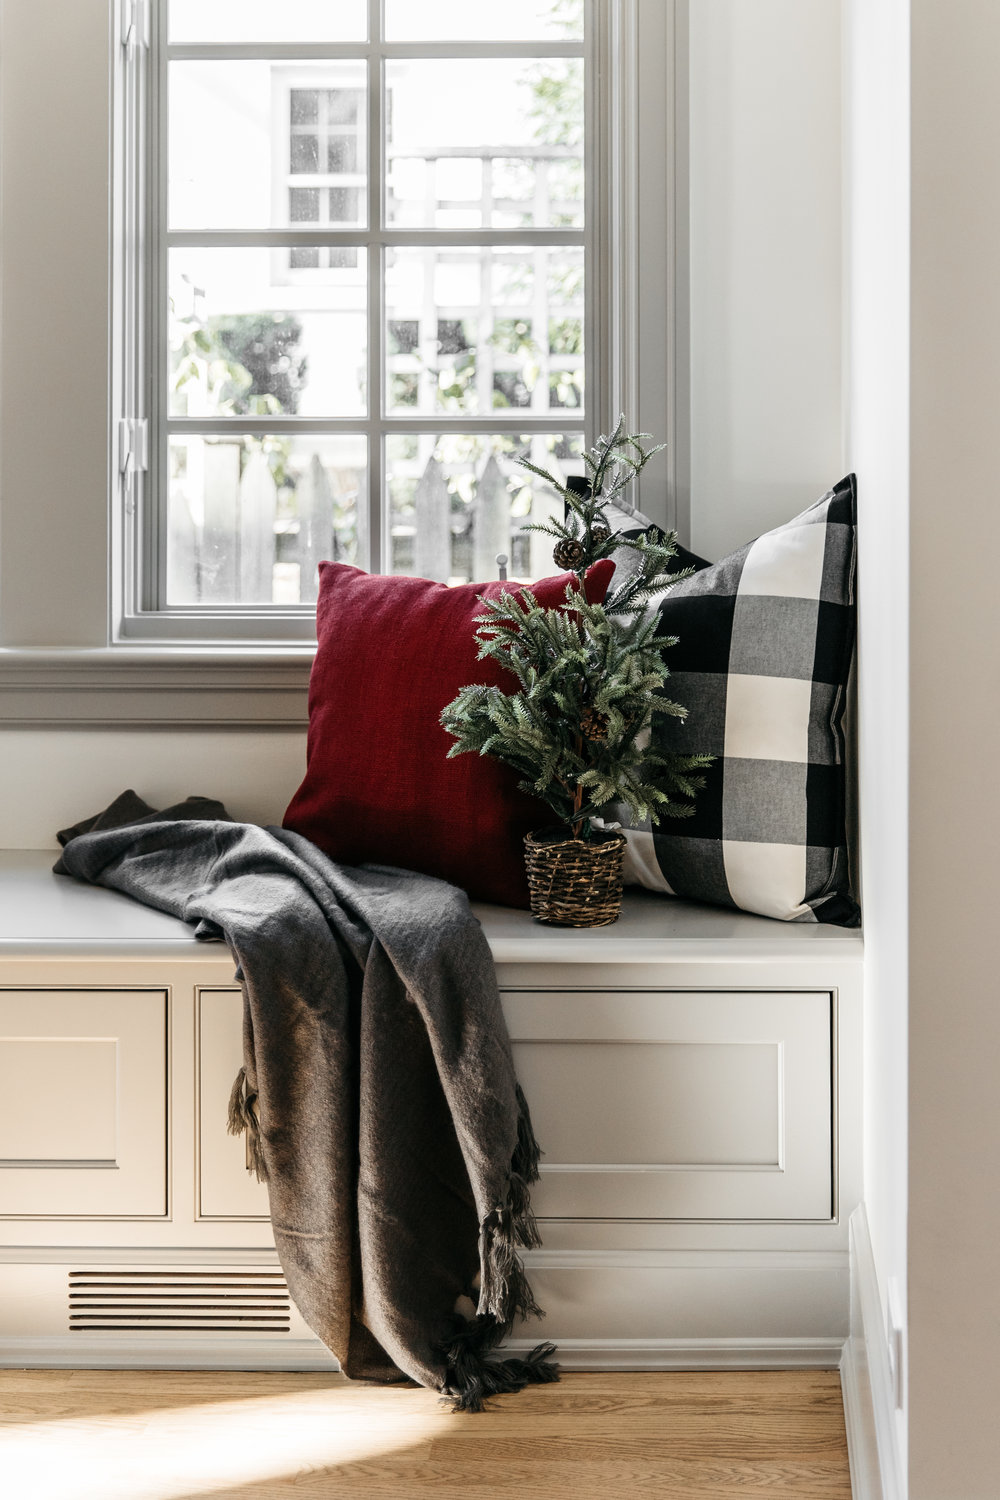 Cozy bench with throw pillows and a blanket